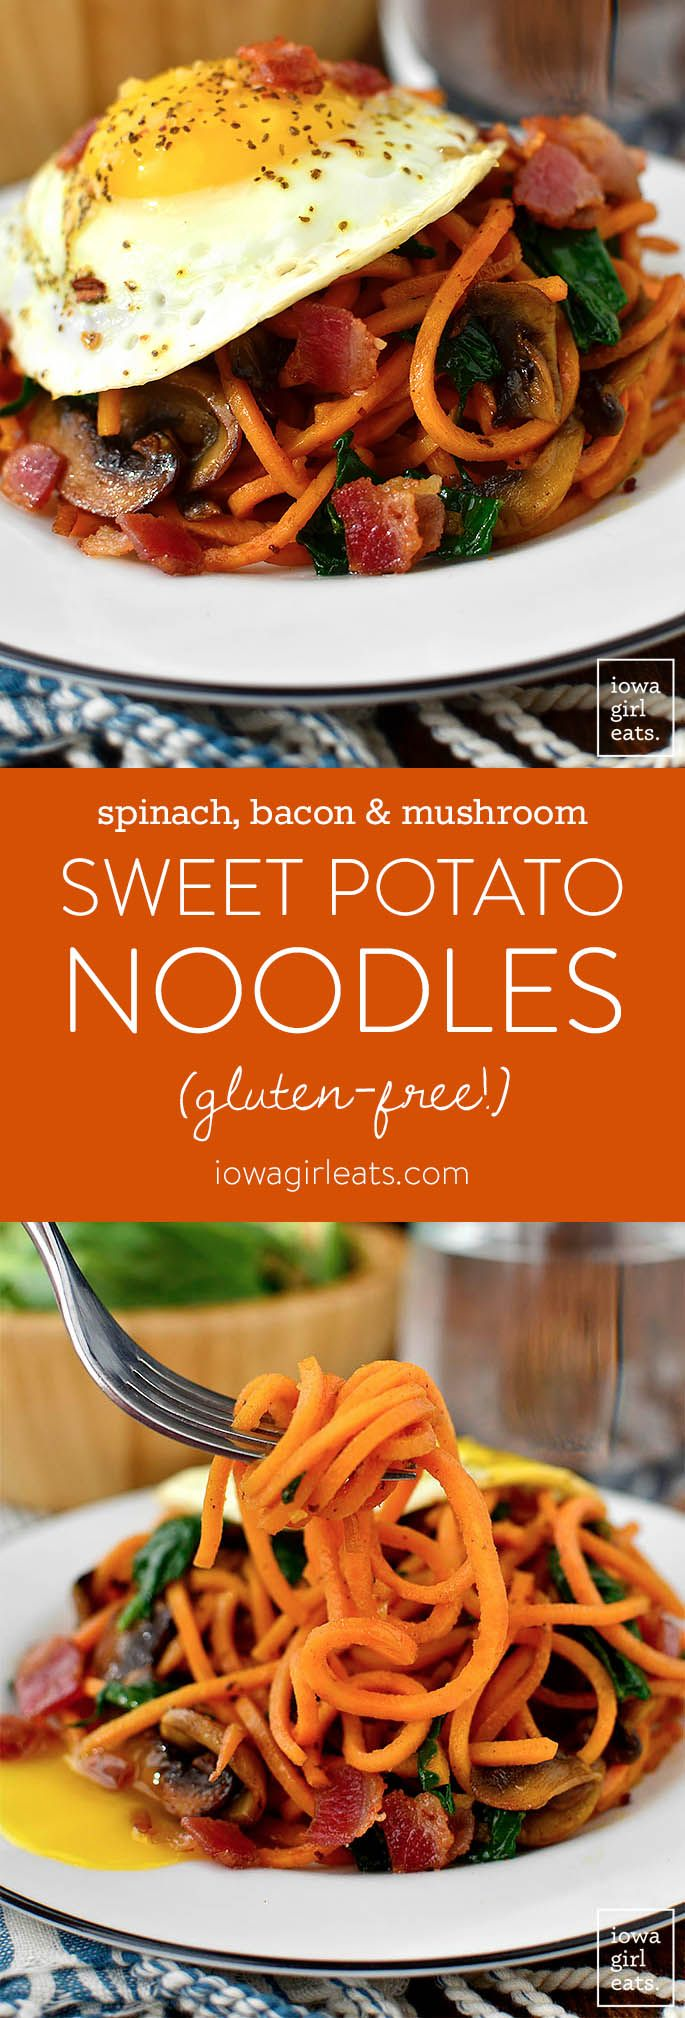 Spinach, Bacon and Mushroom Sweet Potato Noodles is a healthy and filling, 1-skillet dinner recipe that's packed with vegetables. Cooks in under 20 minutes, too!| iowagirleats.com #glutenfree